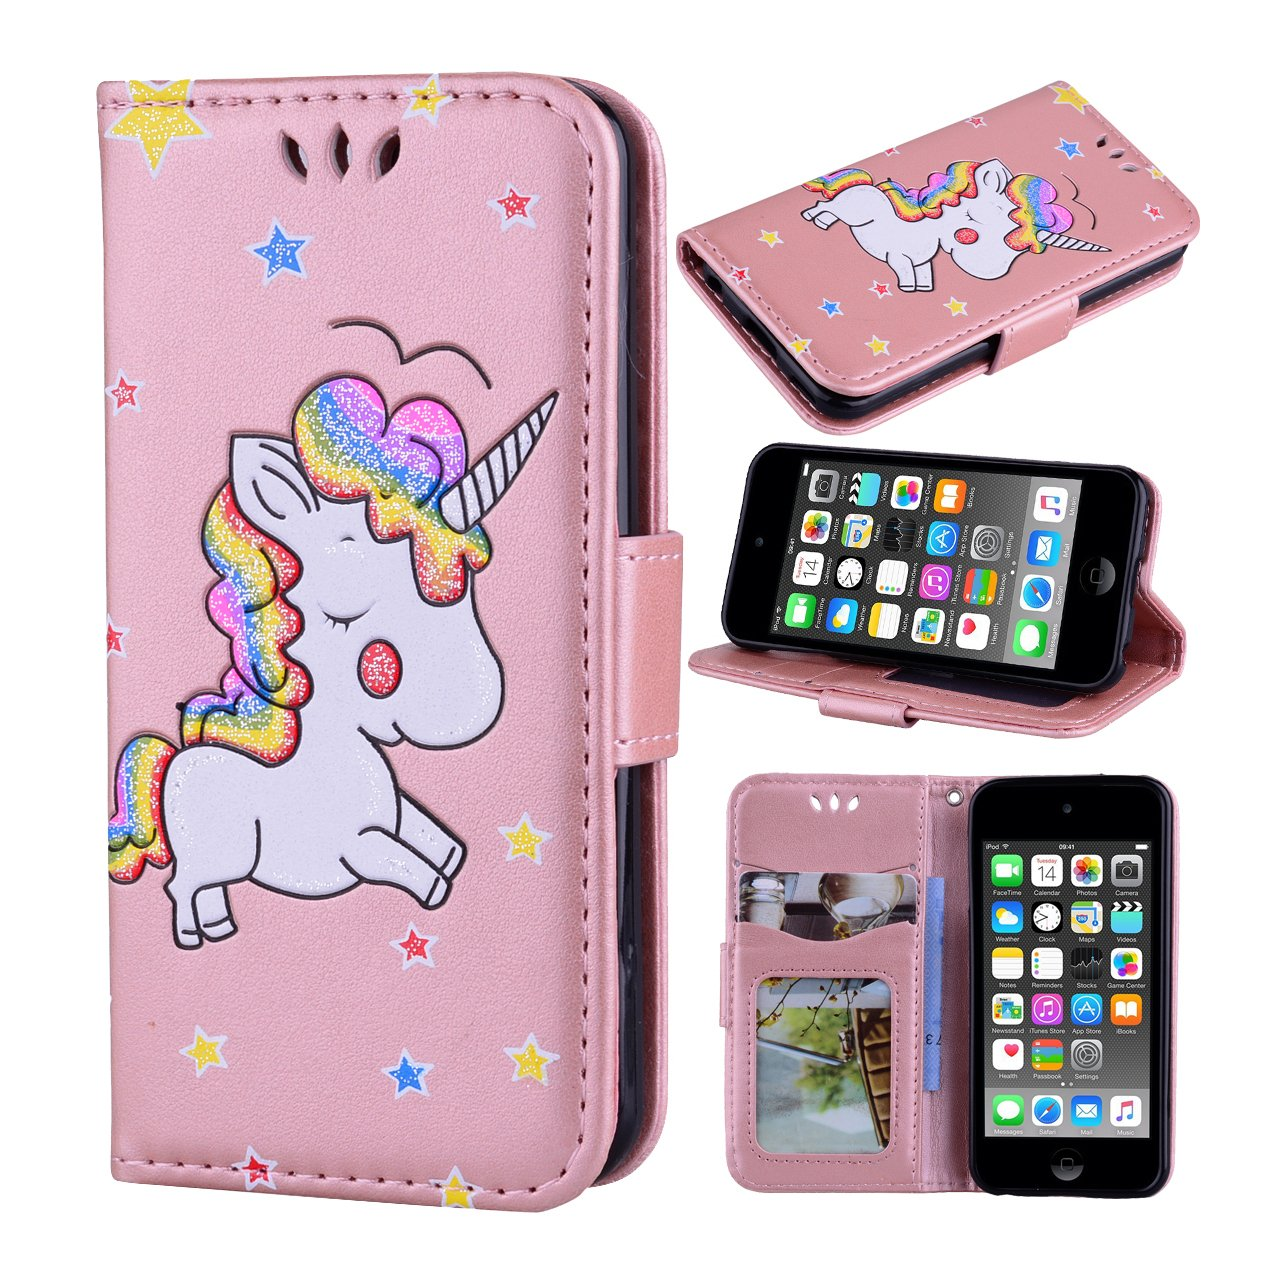 reputable site a64ba 31482 Cheap Cute 3d Ipod Cases, find Cute 3d Ipod Cases deals on line at ...